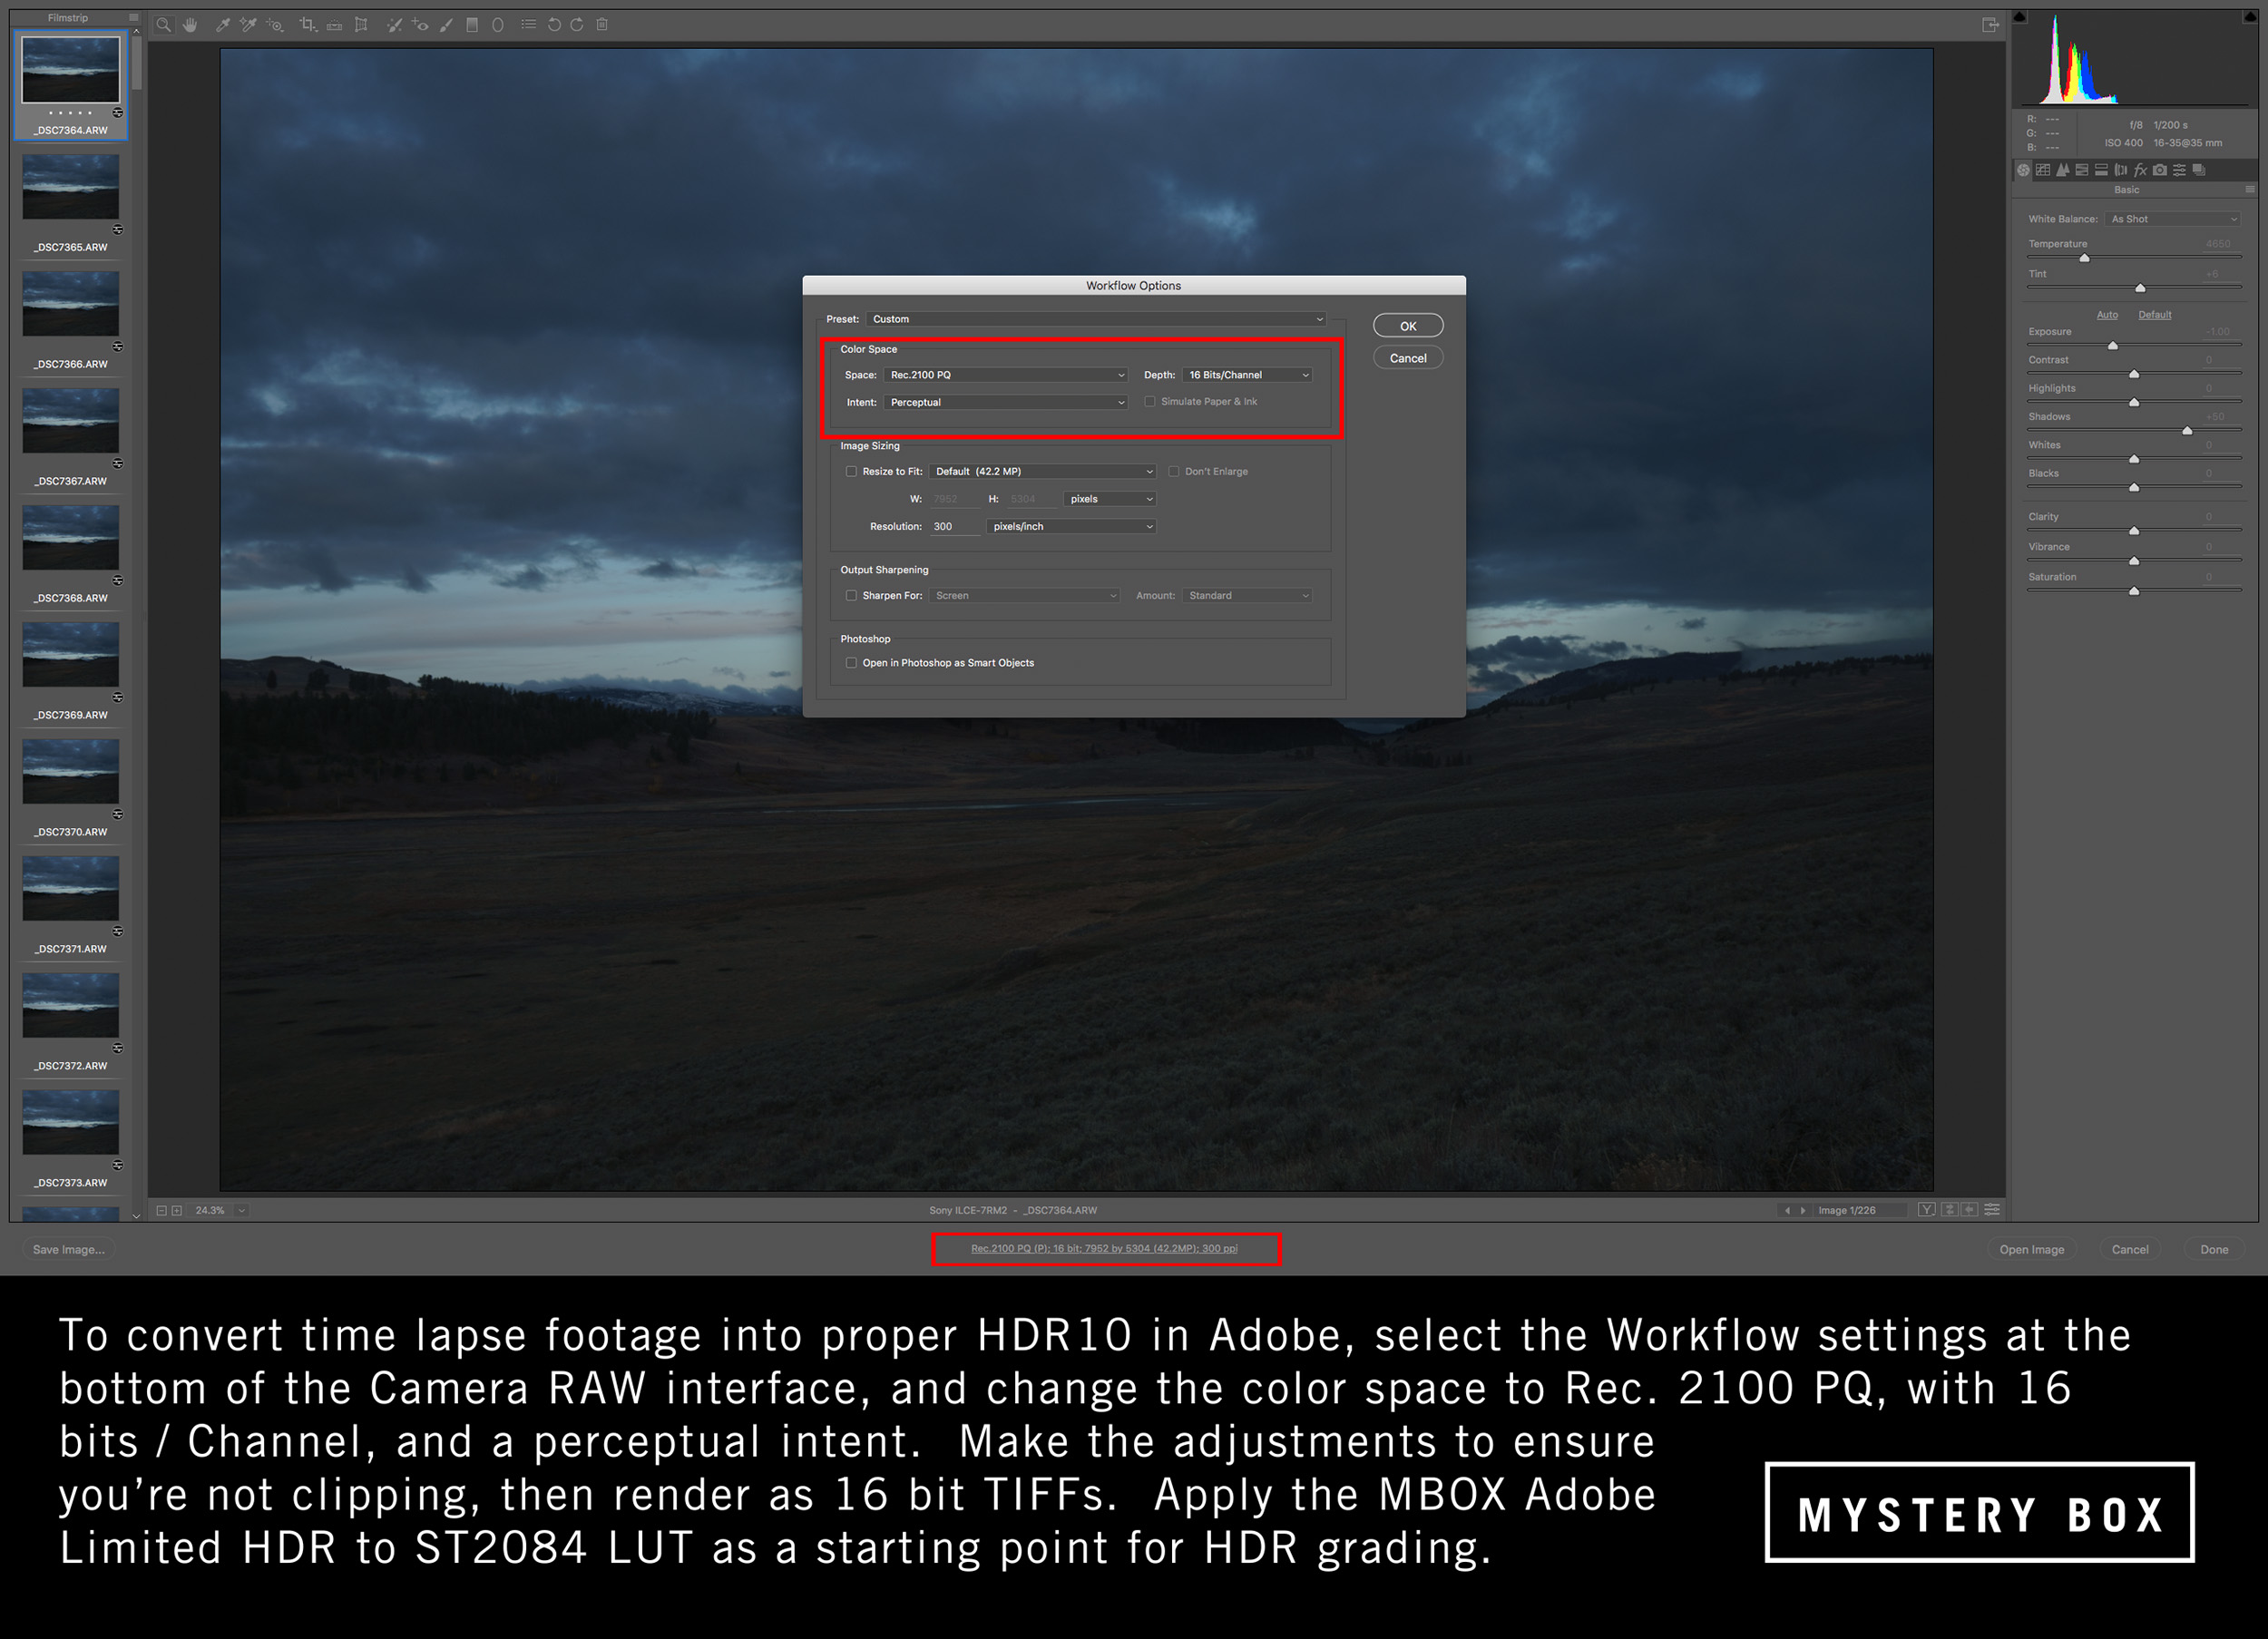 Adobe Camera RAW interpretation for HDR10